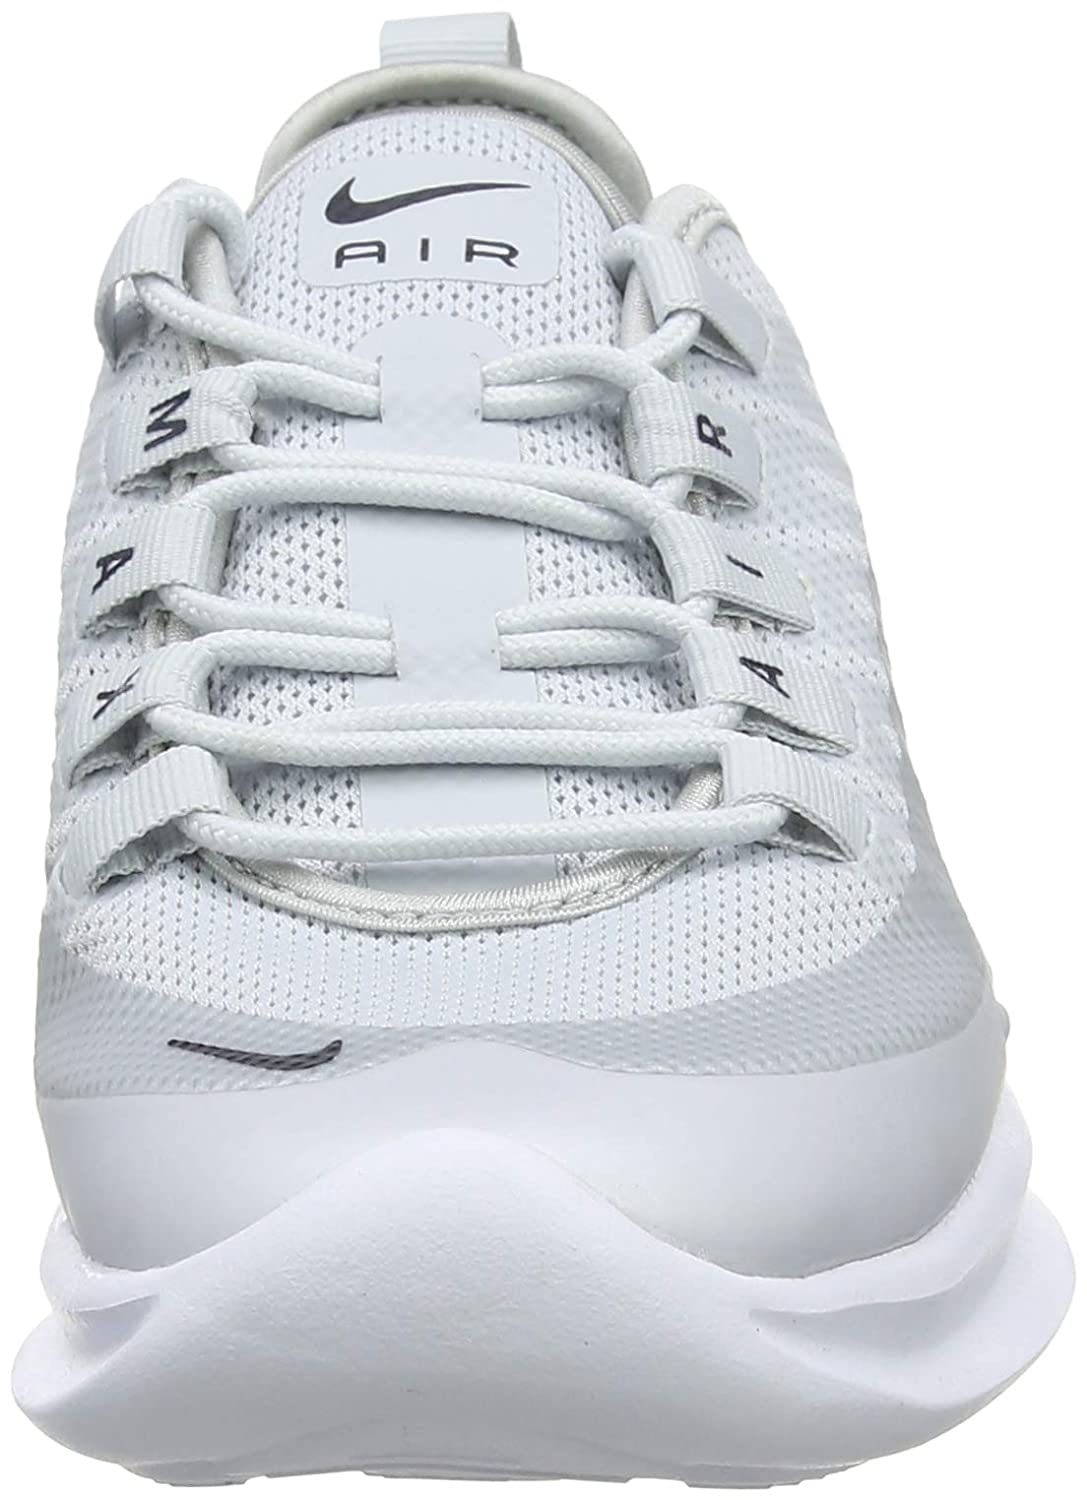 95a92b65dd Nike Women's's Air Max Axis Running Shoes: Amazon.co.uk: Shoes & Bags